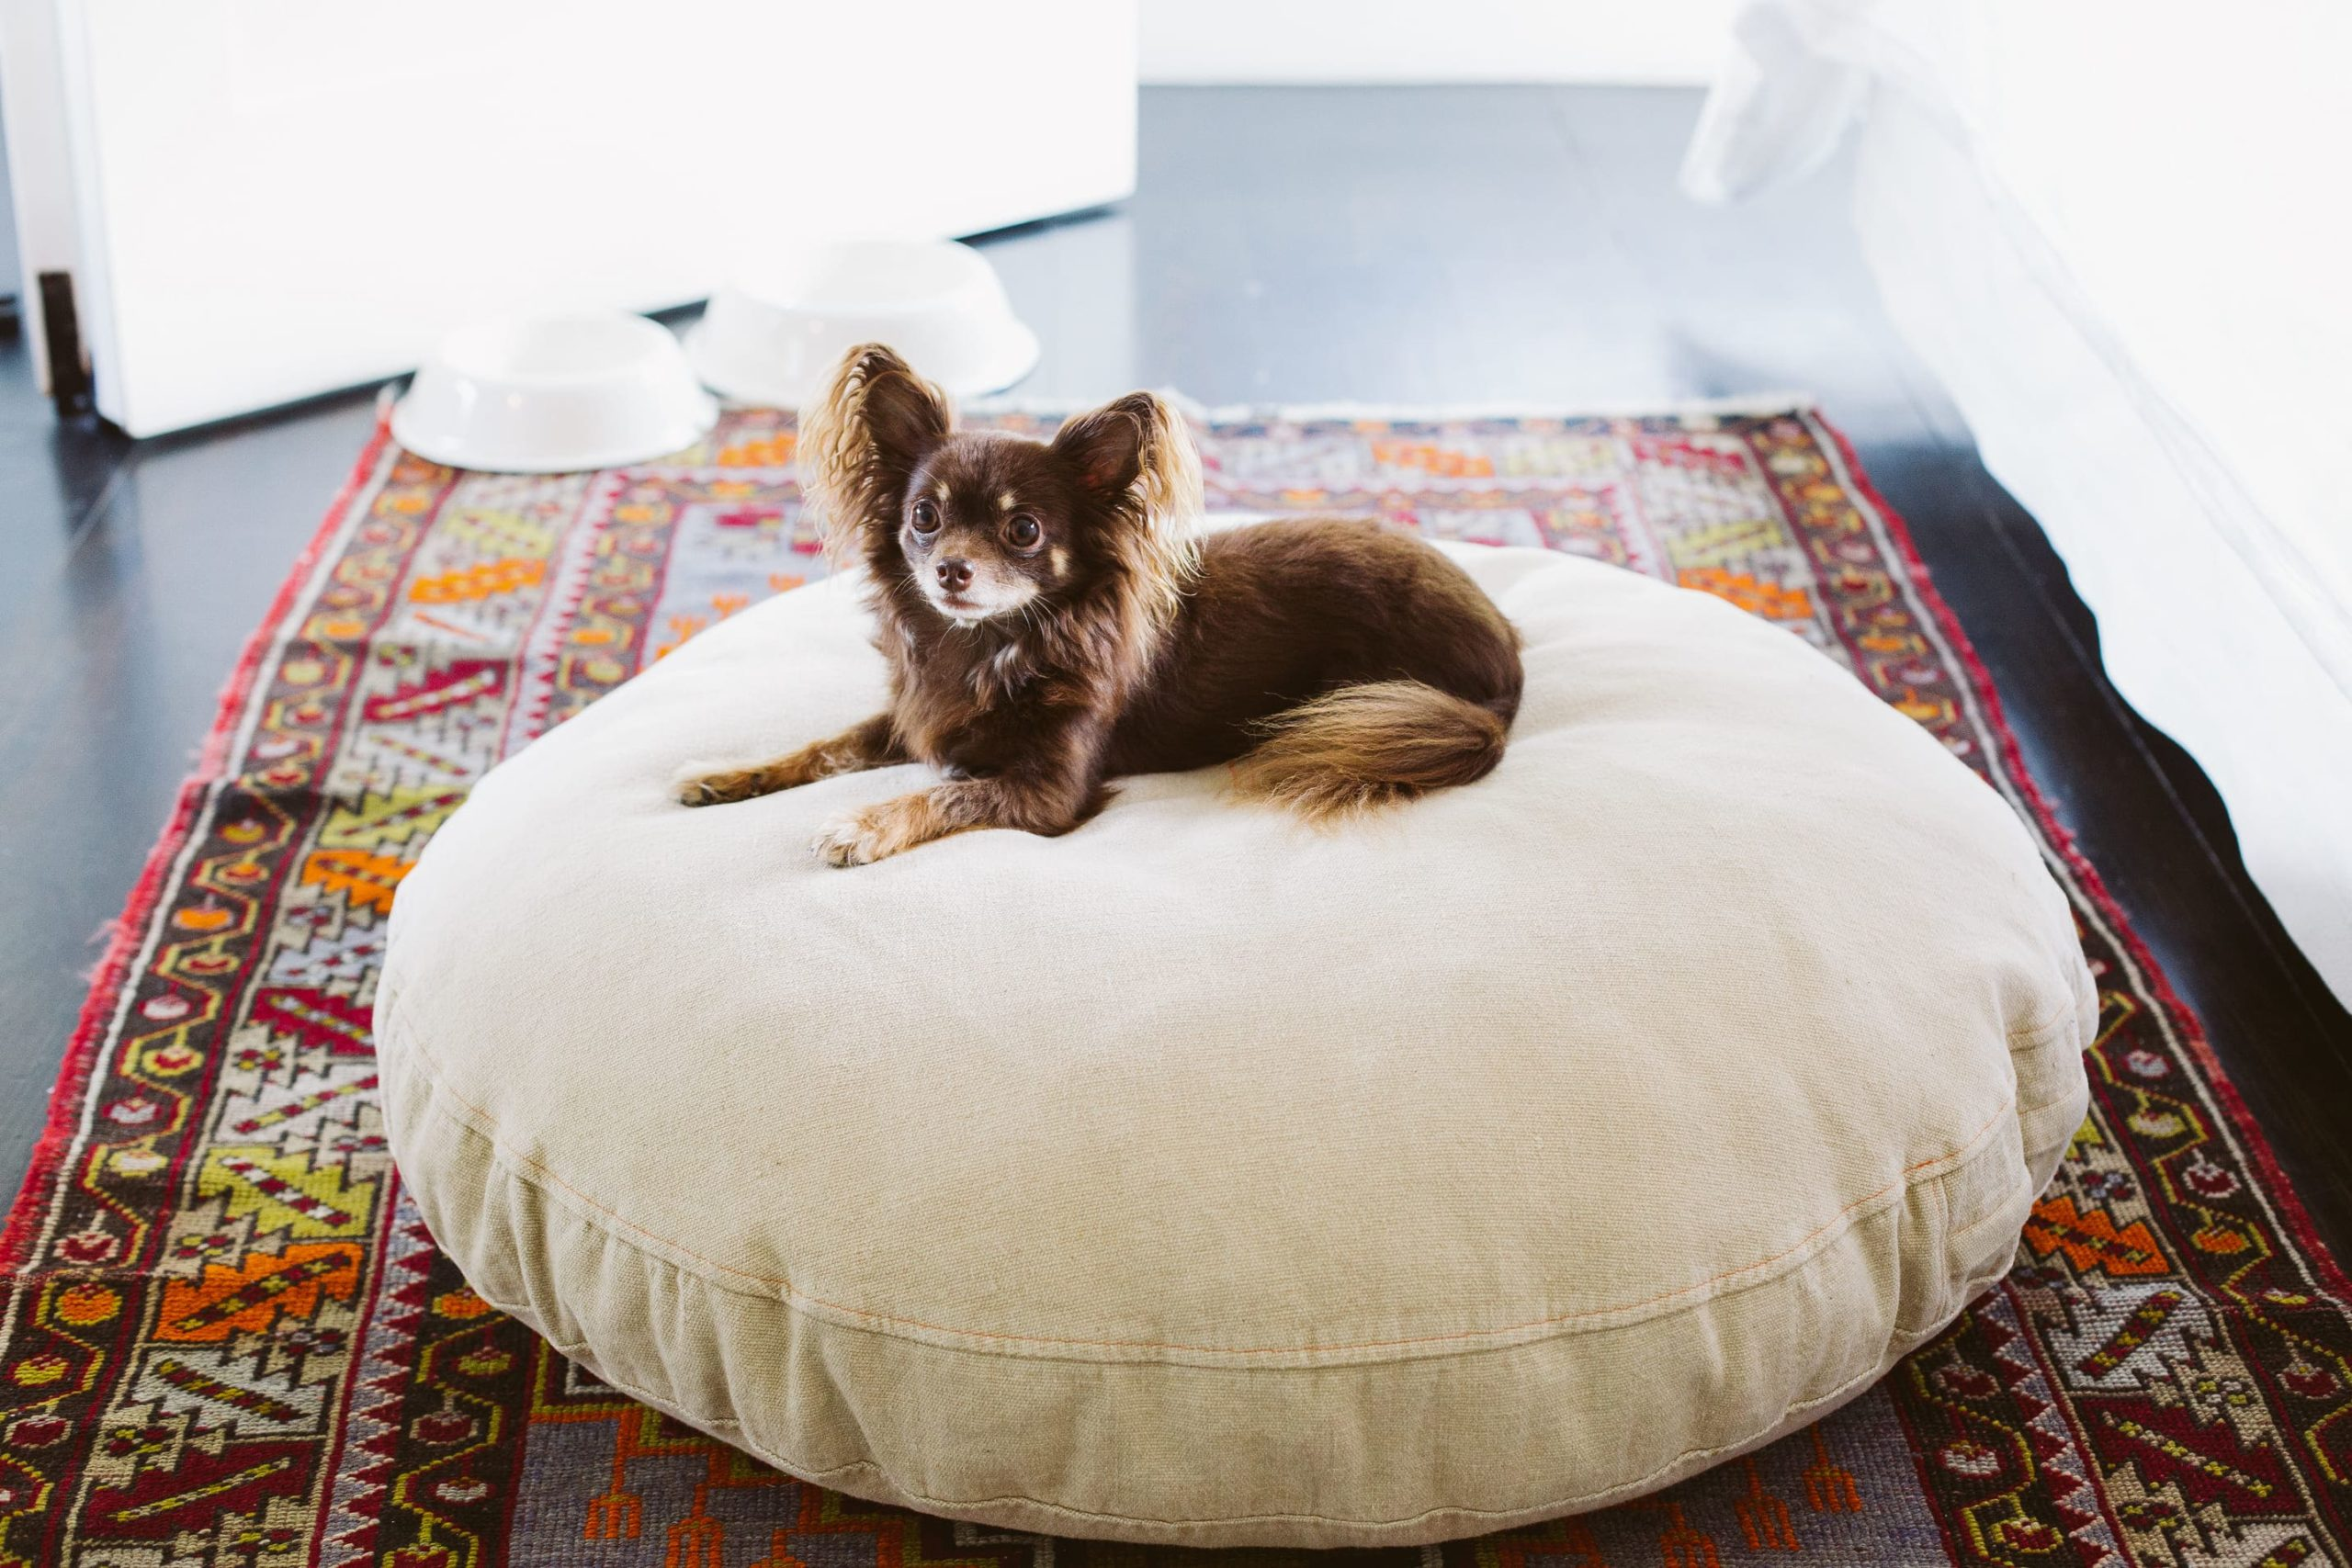 Small dog sitting on a dog-bed